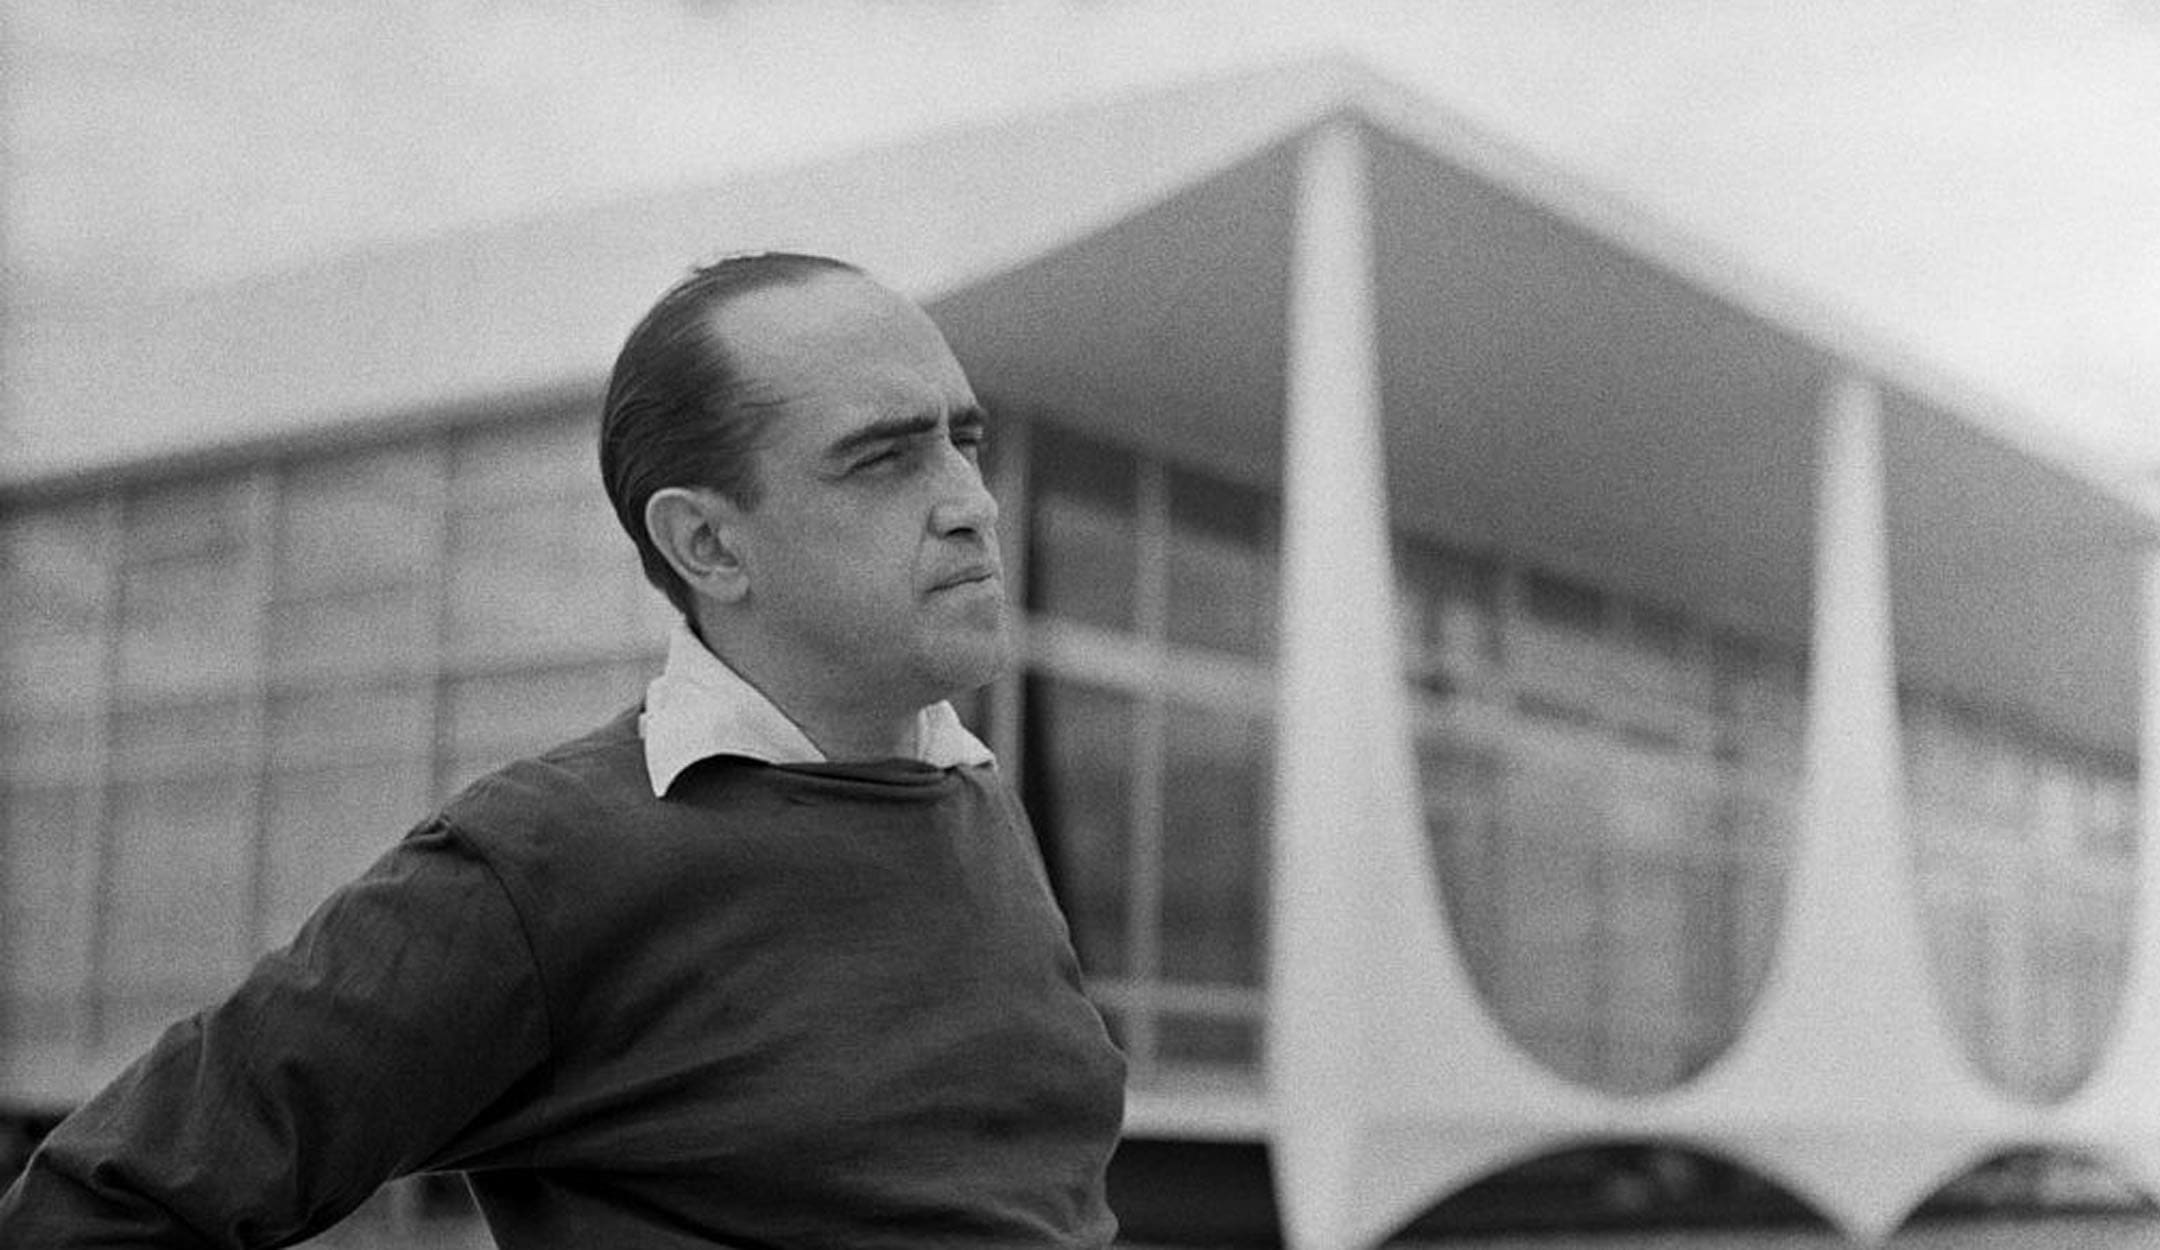 Retrato Oscar Niemeyer